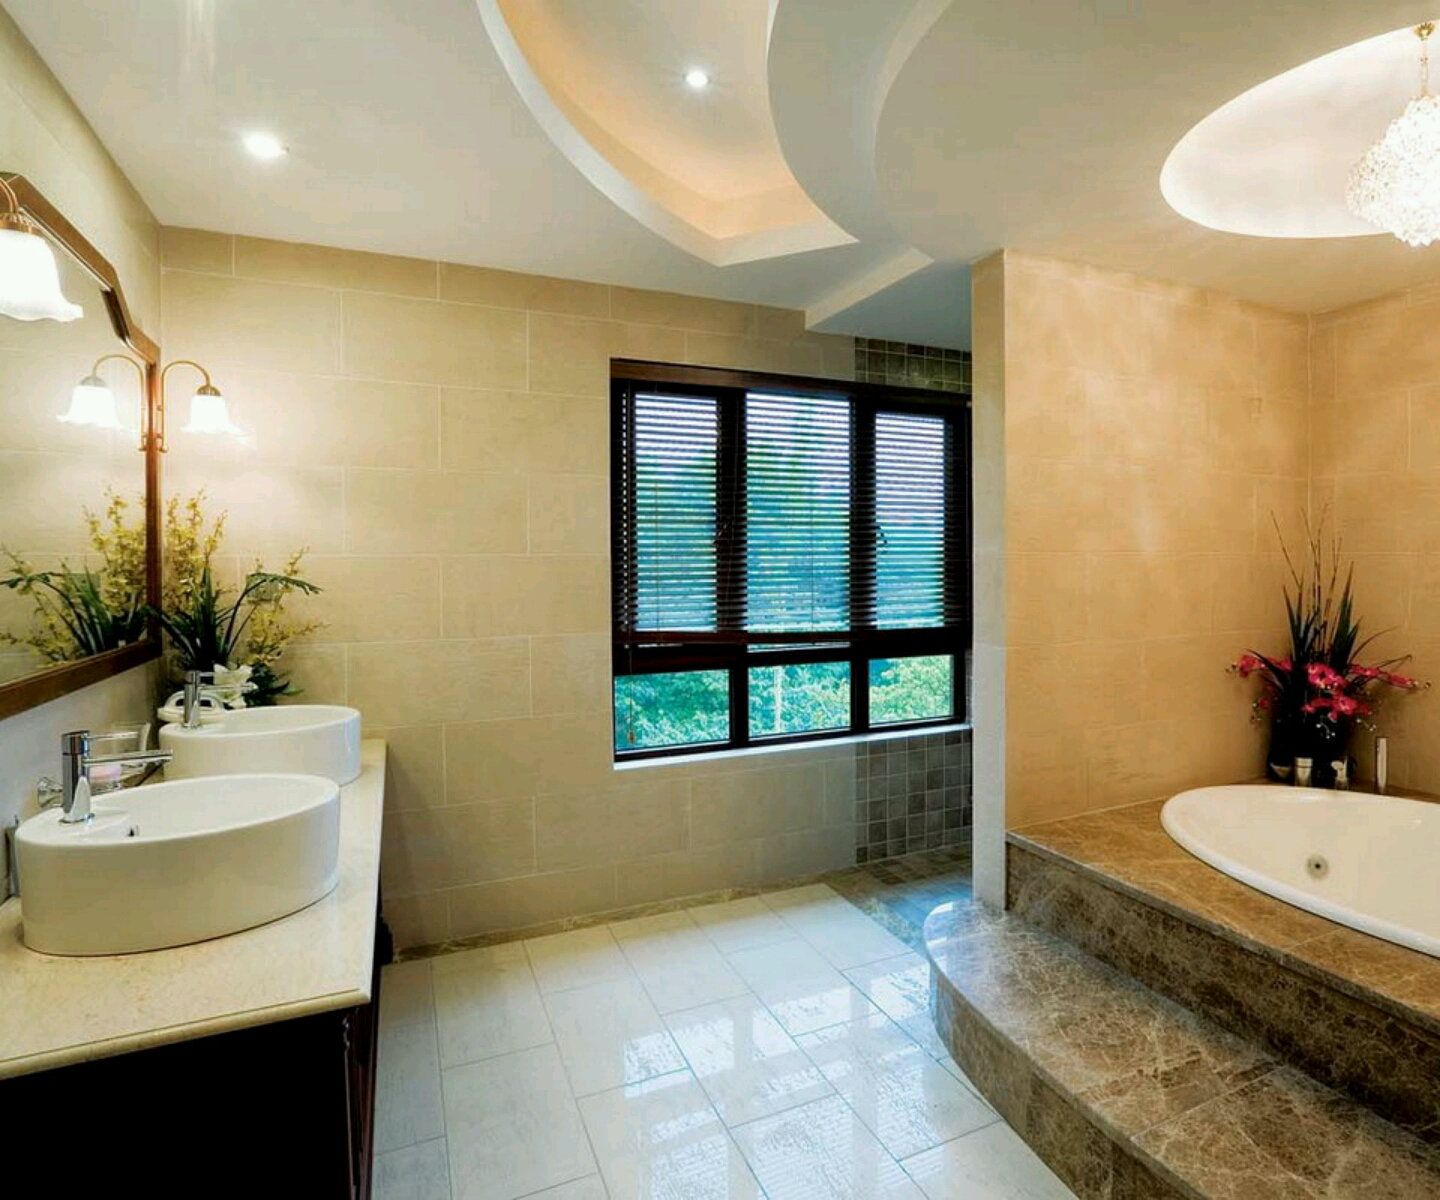 New home designs latest ultra modern washroom designs ideas for Washroom designs pictures